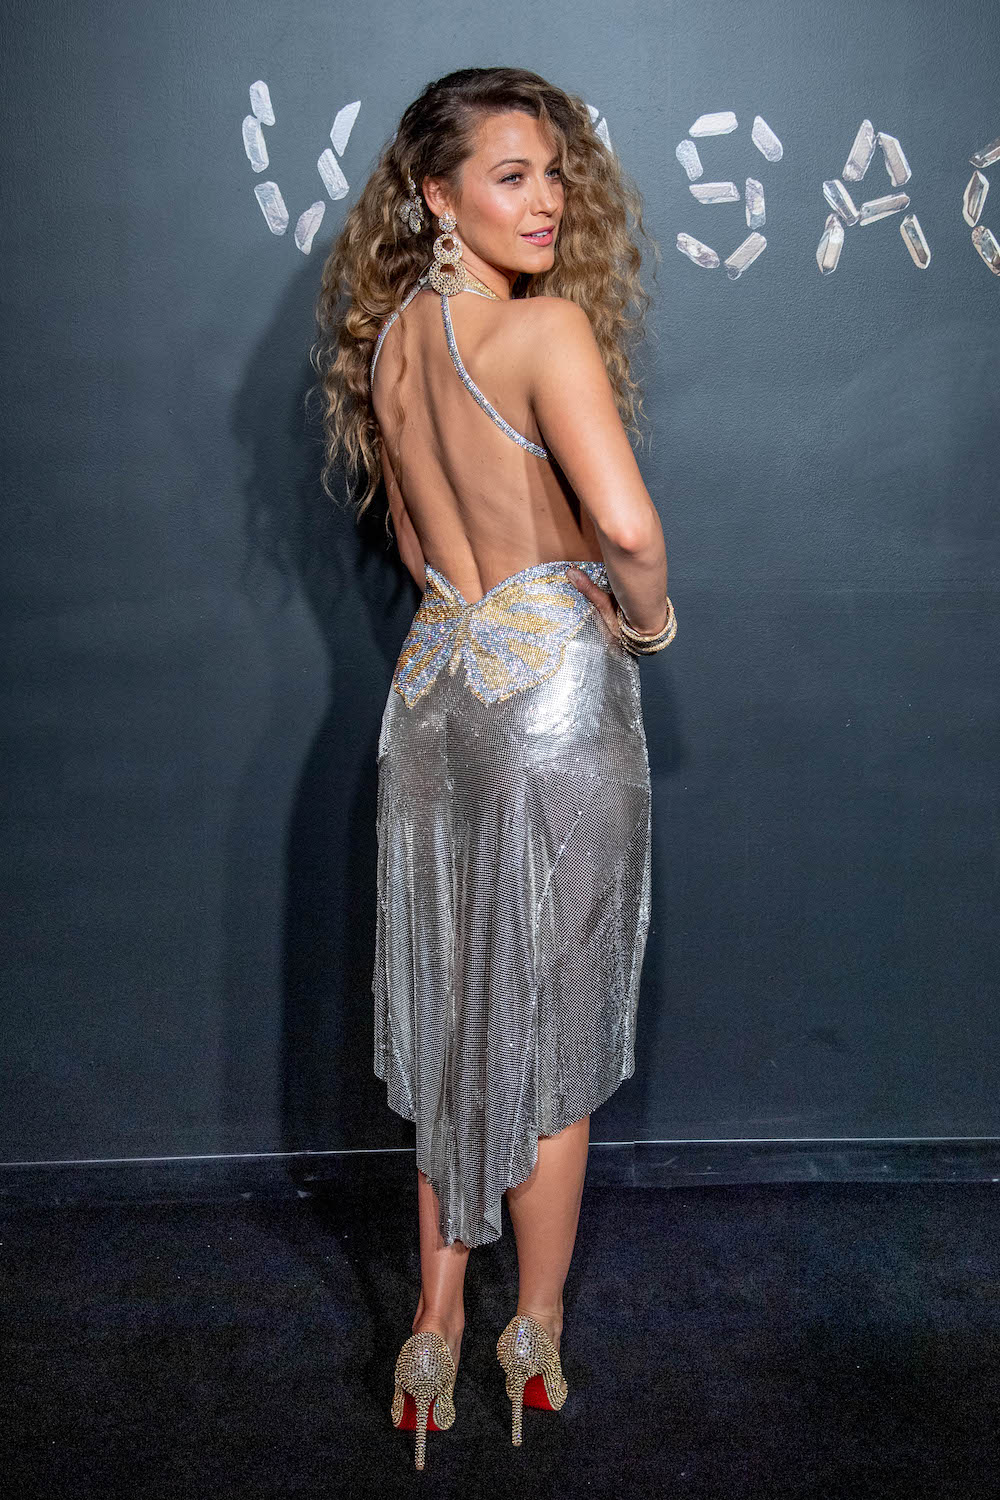 blake lively dazzled on the red carpet in a vintage